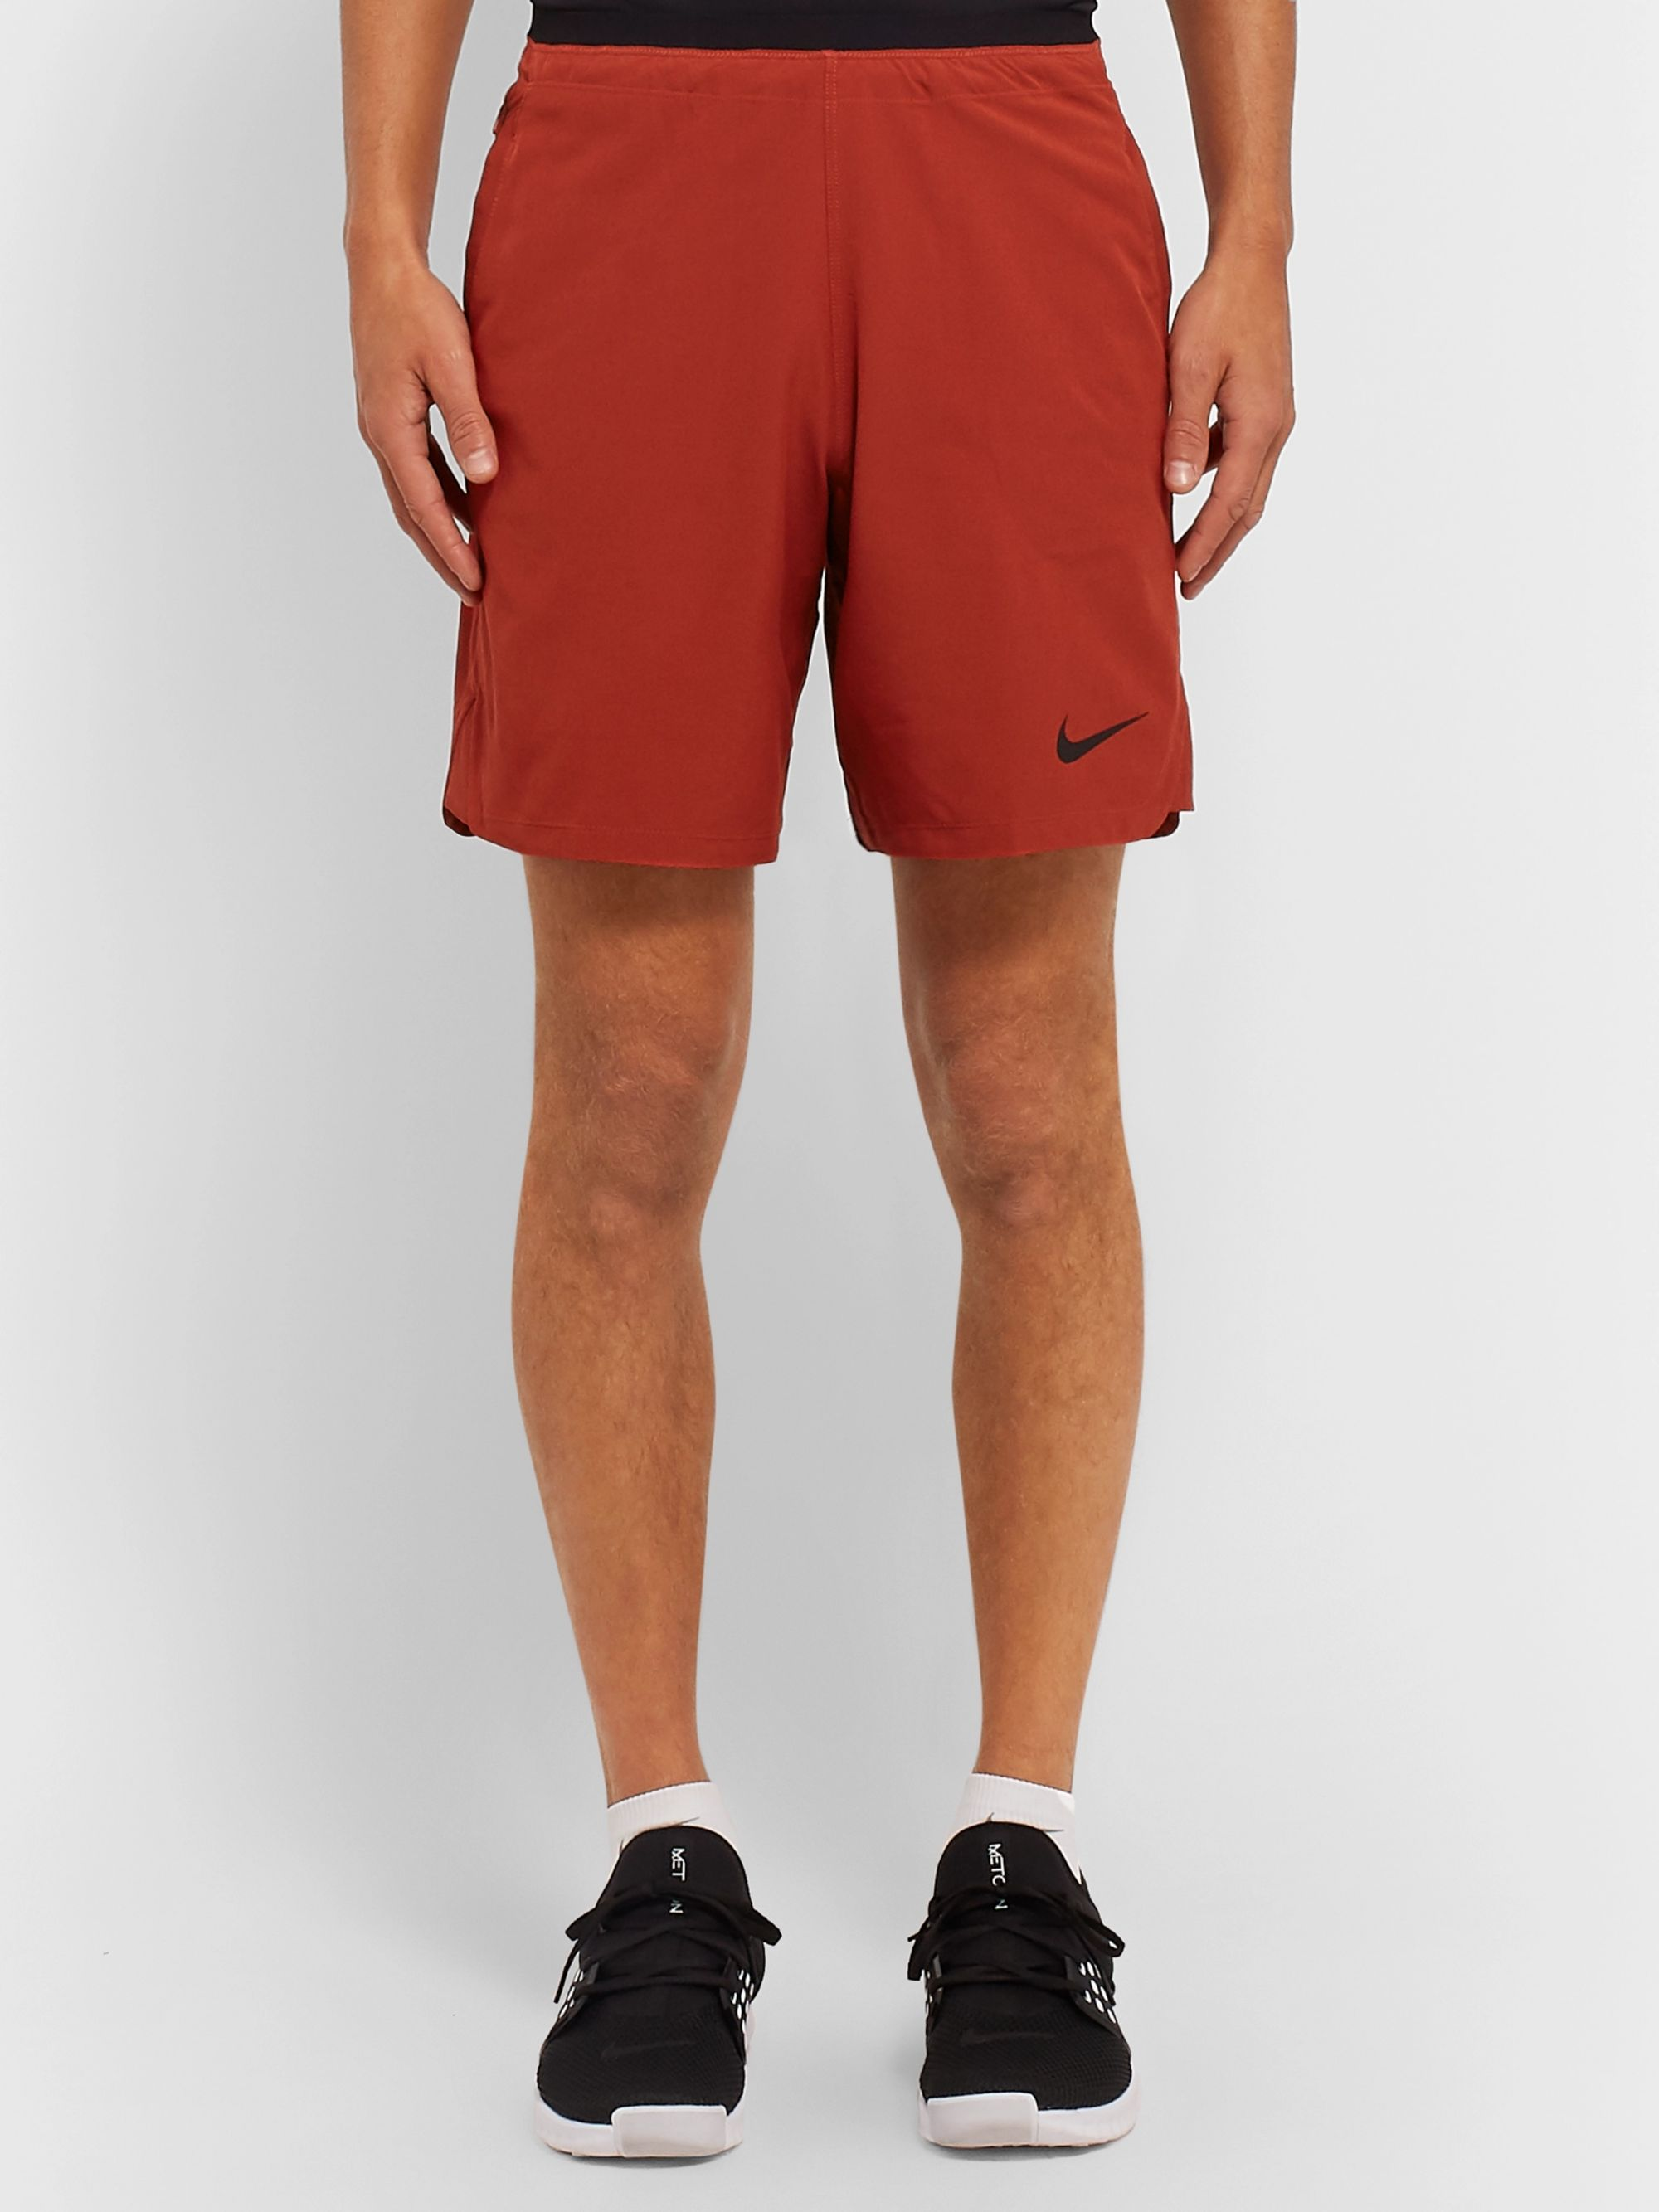 Nike Training Flex Repel Dri-FIT Shorts